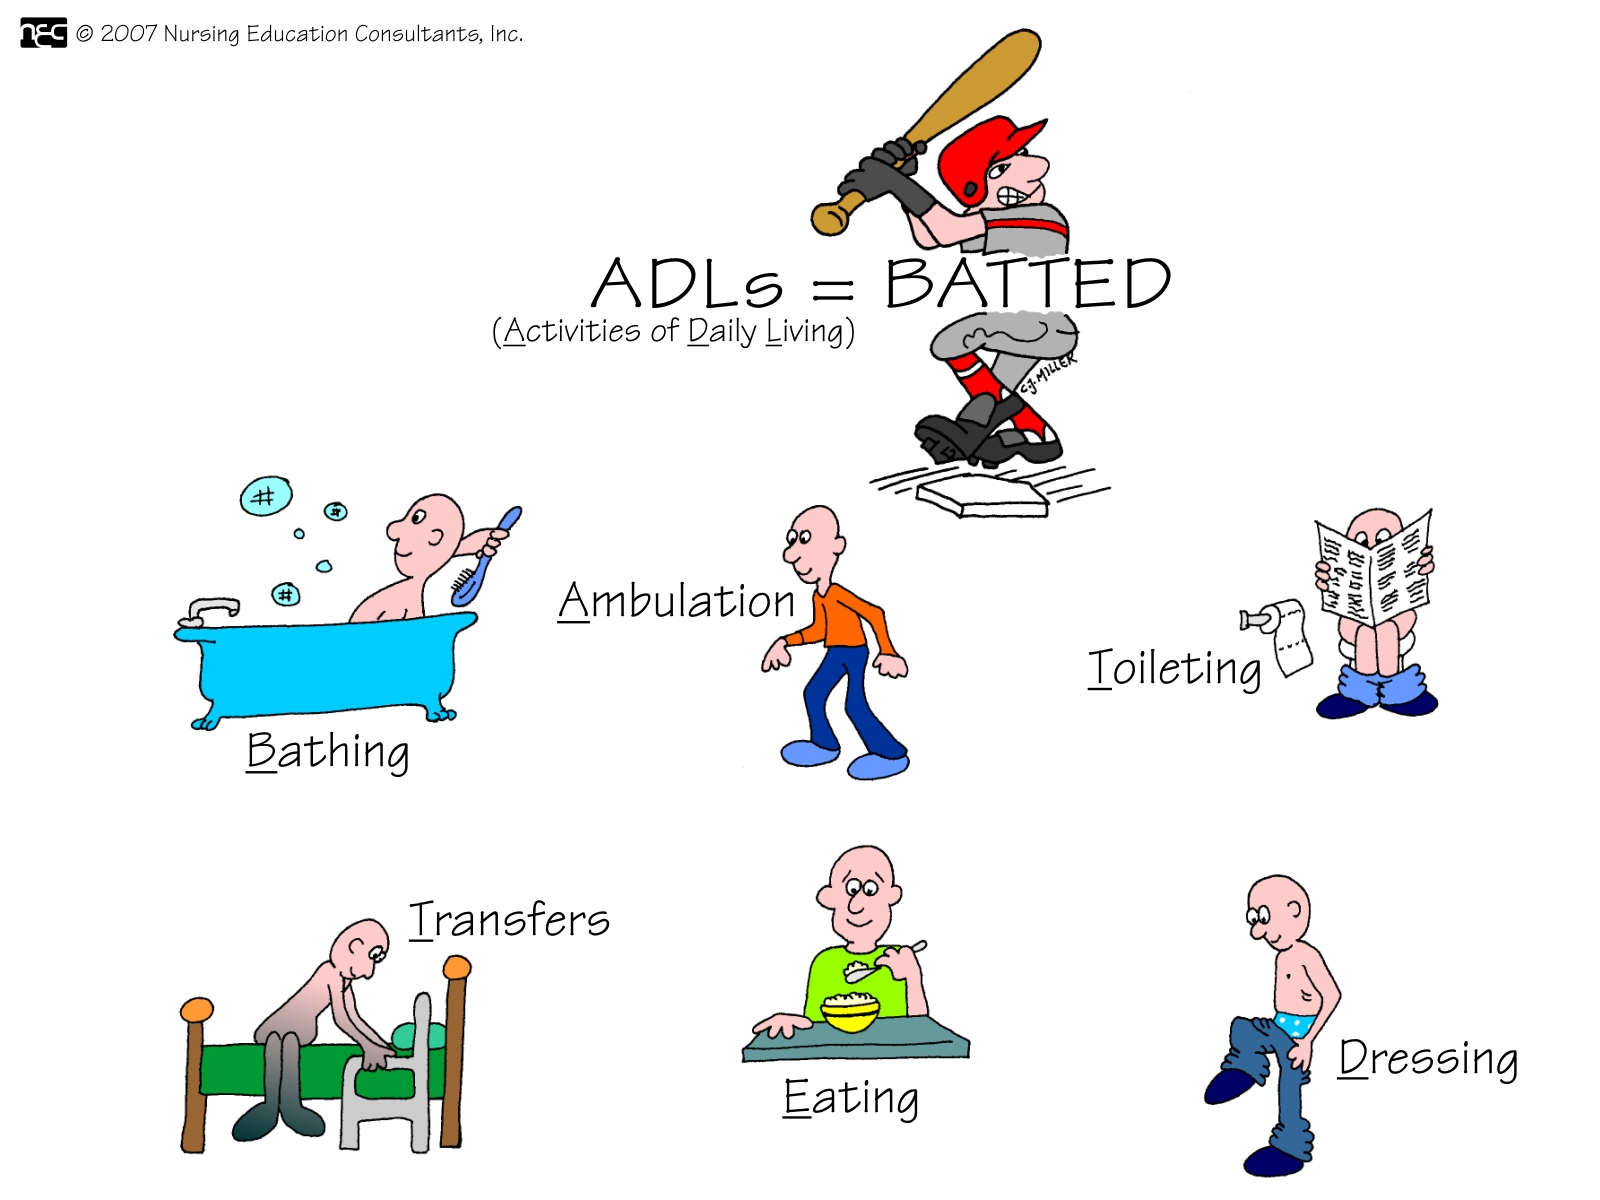 Adls Activities Of Daily Living